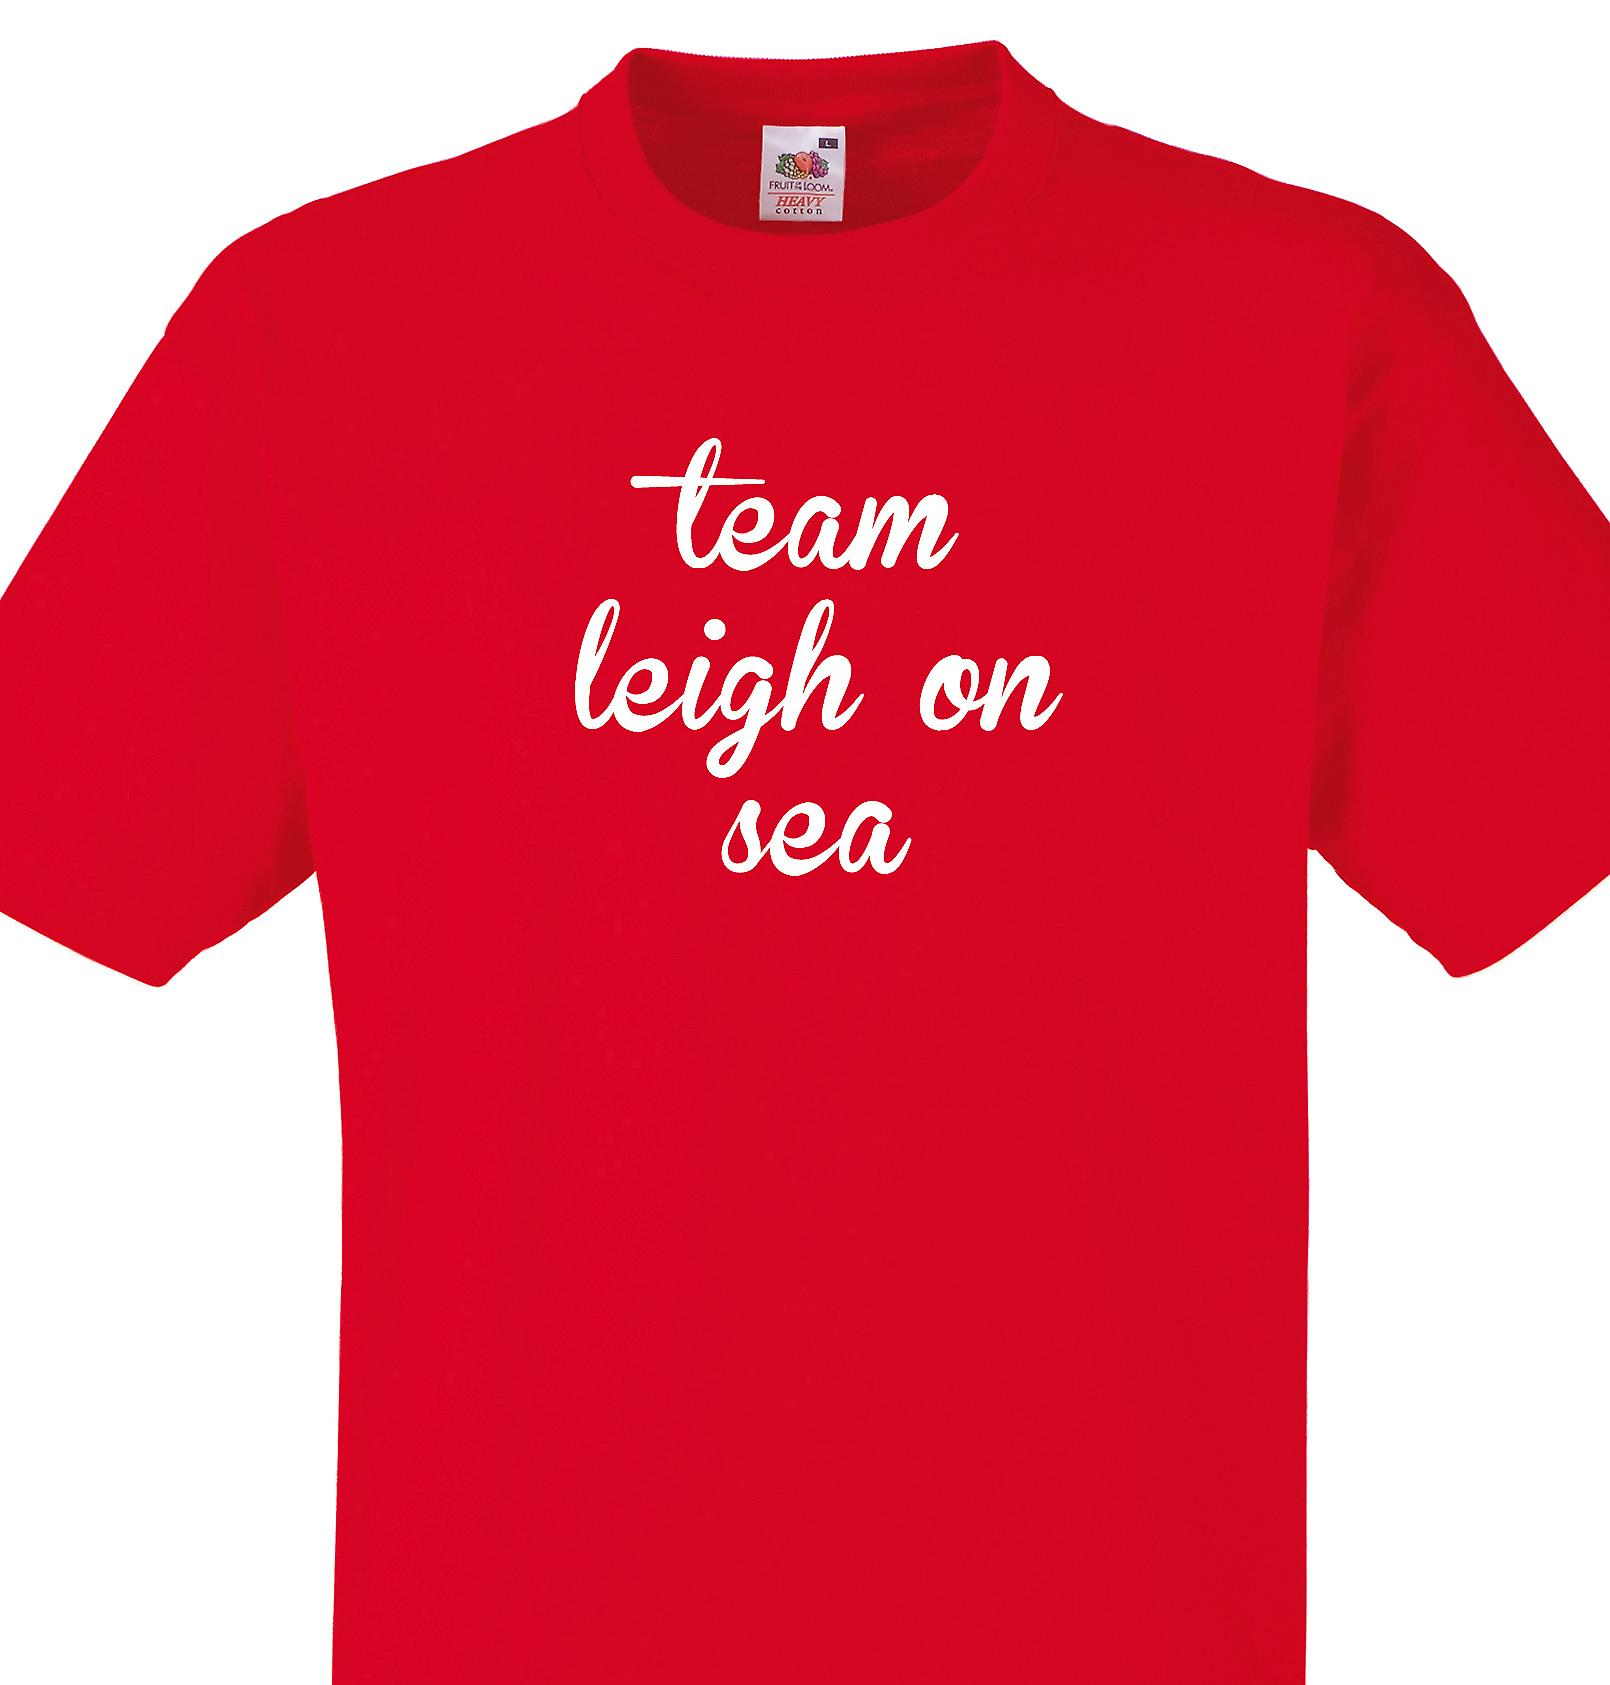 Team Leigh on sea Red T shirt